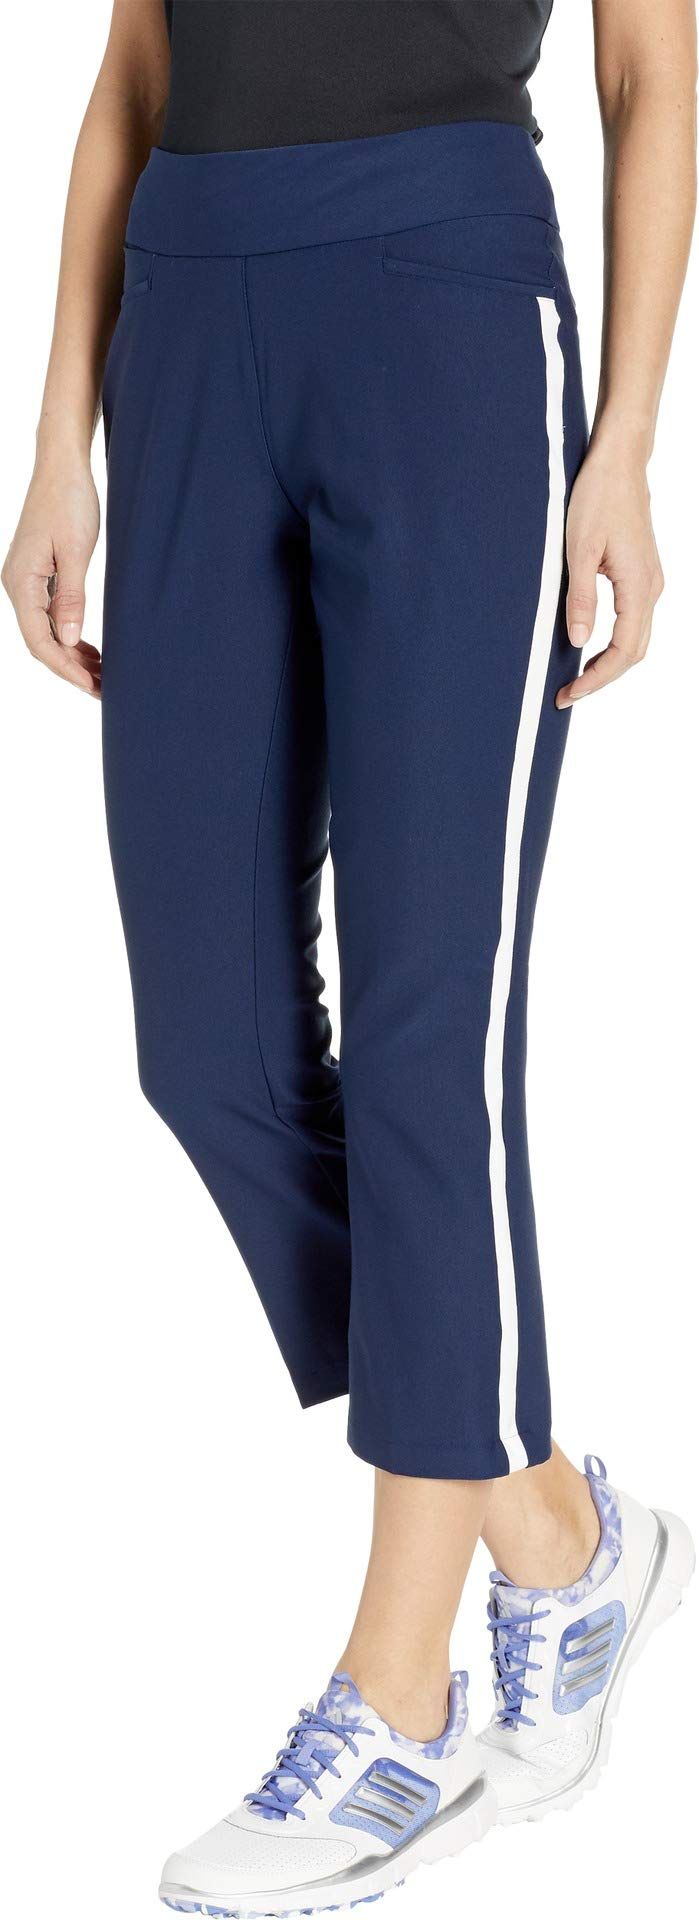 adidas Golf Novelty Flair Cropped Pant, Night Indigo, X-Large by adidas